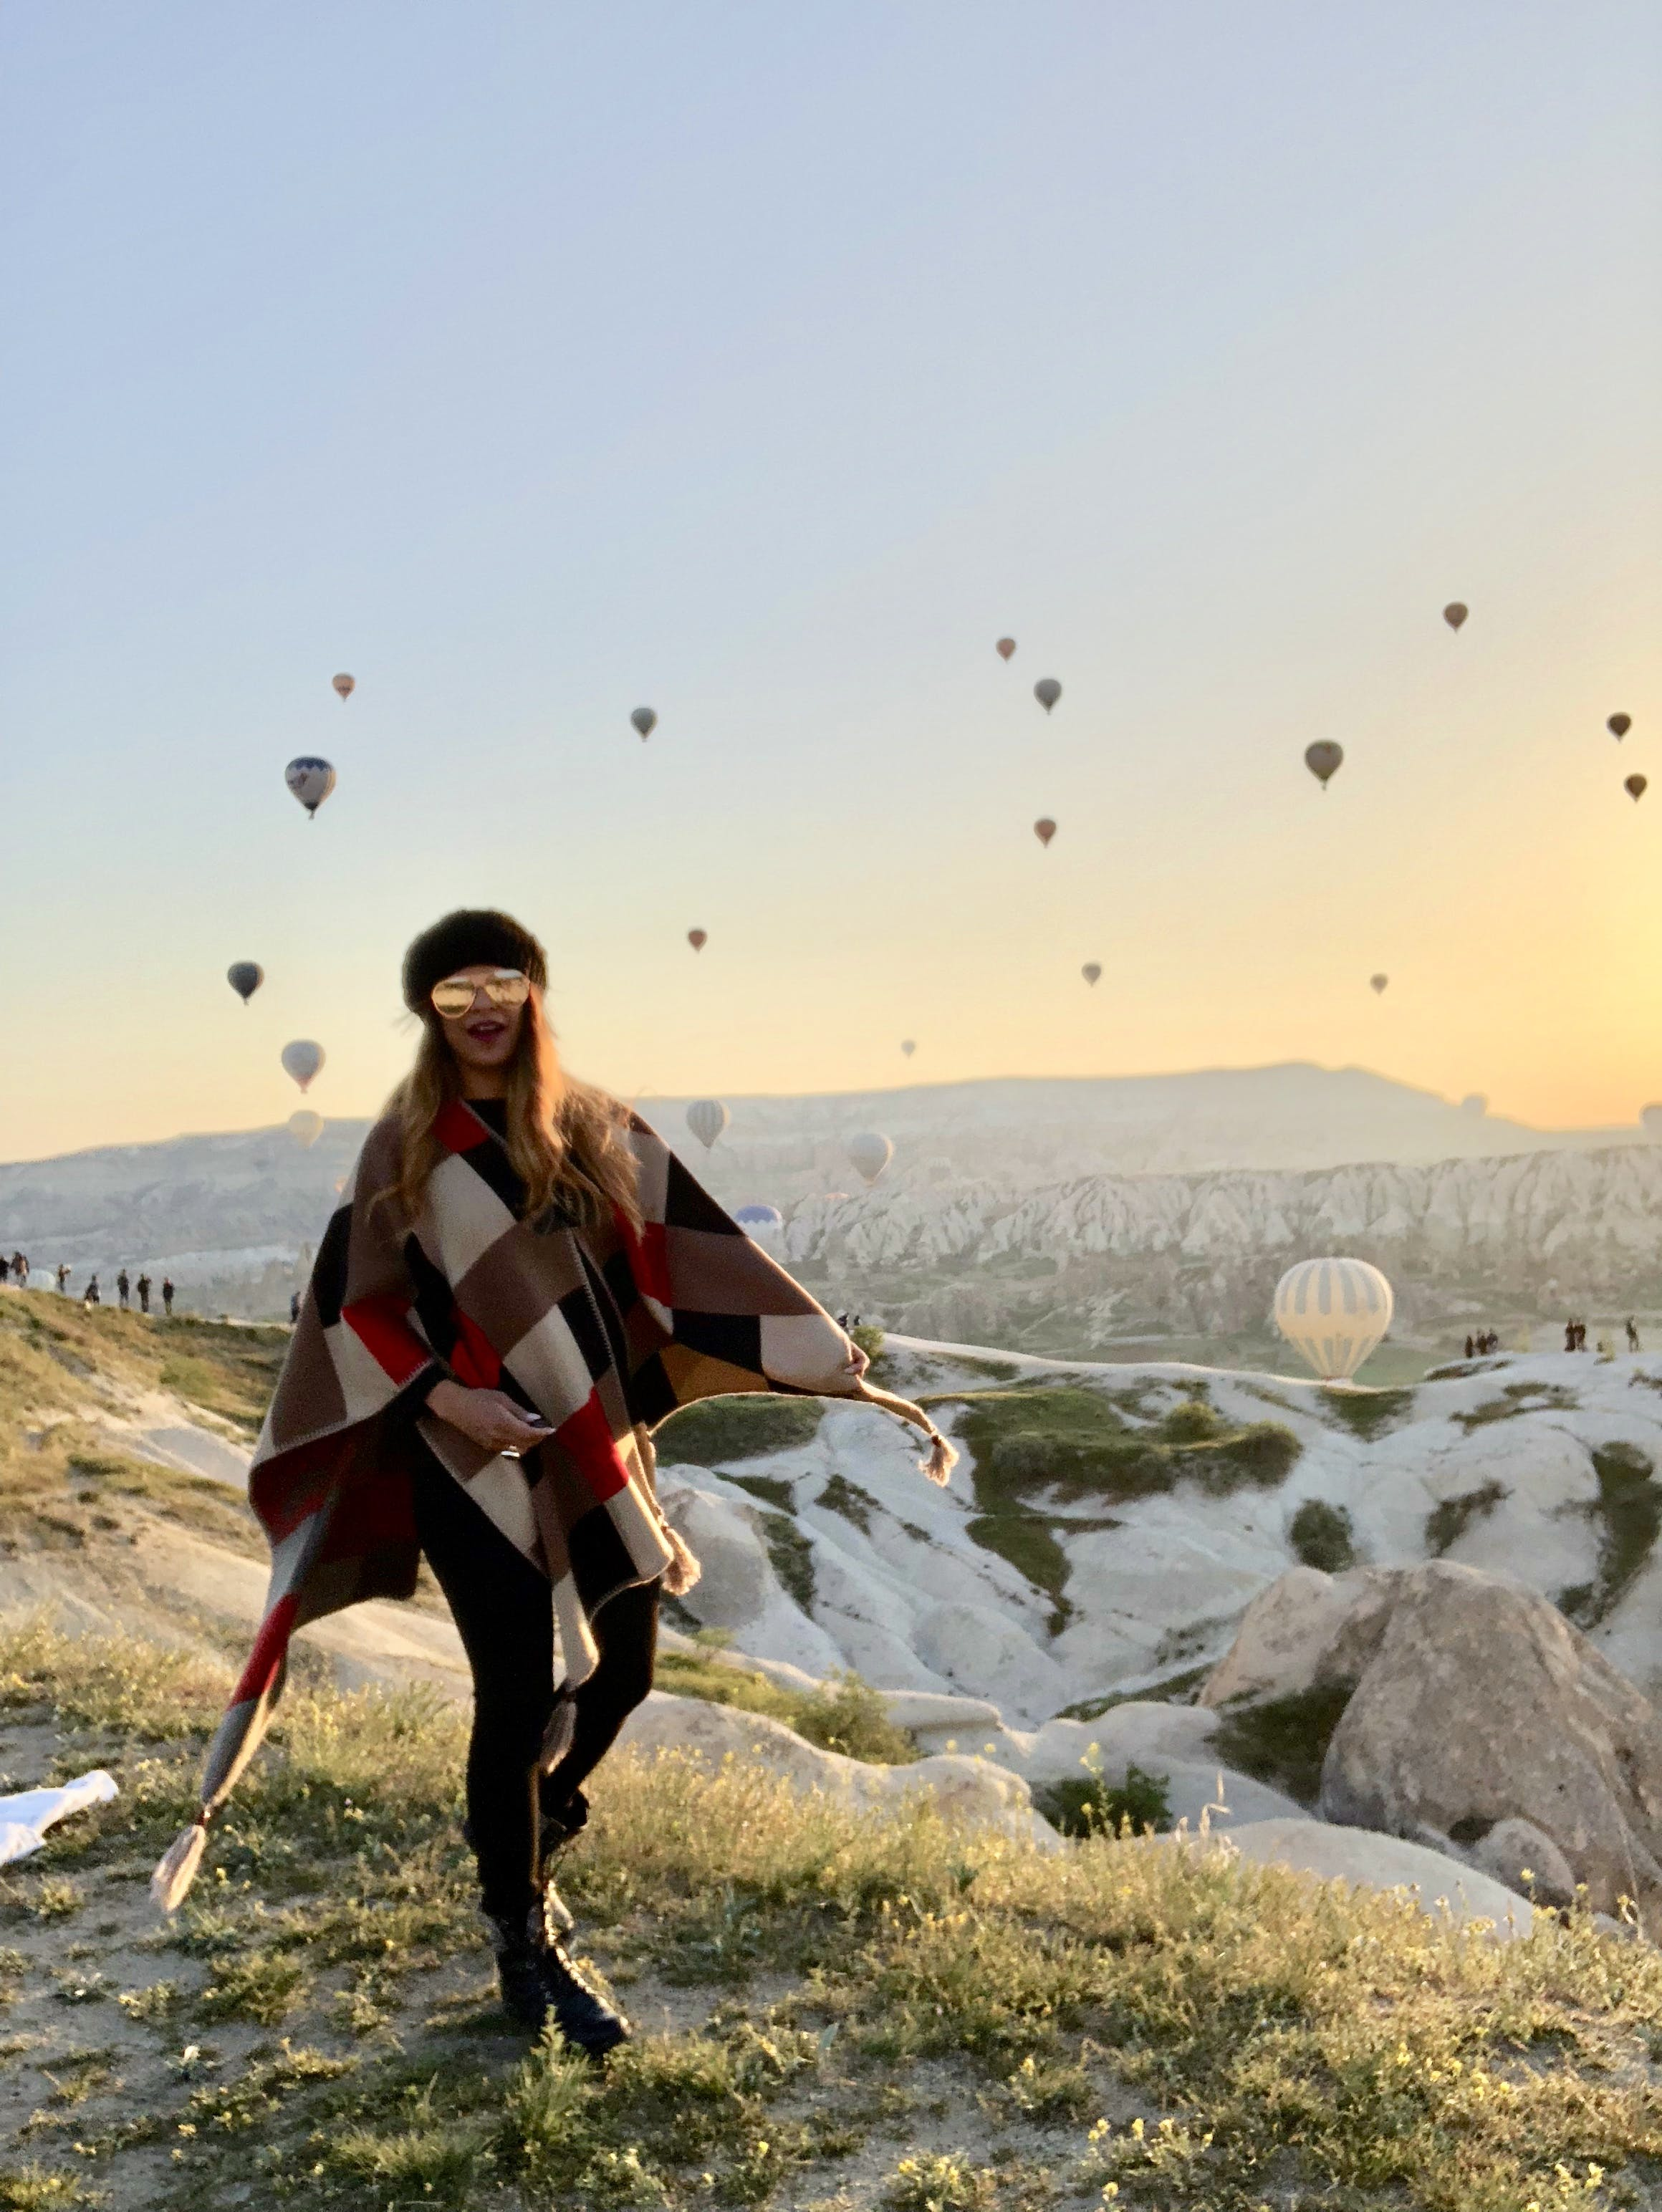 Woman Standing on Hill With Flying Hot-Air Balloons at the Back